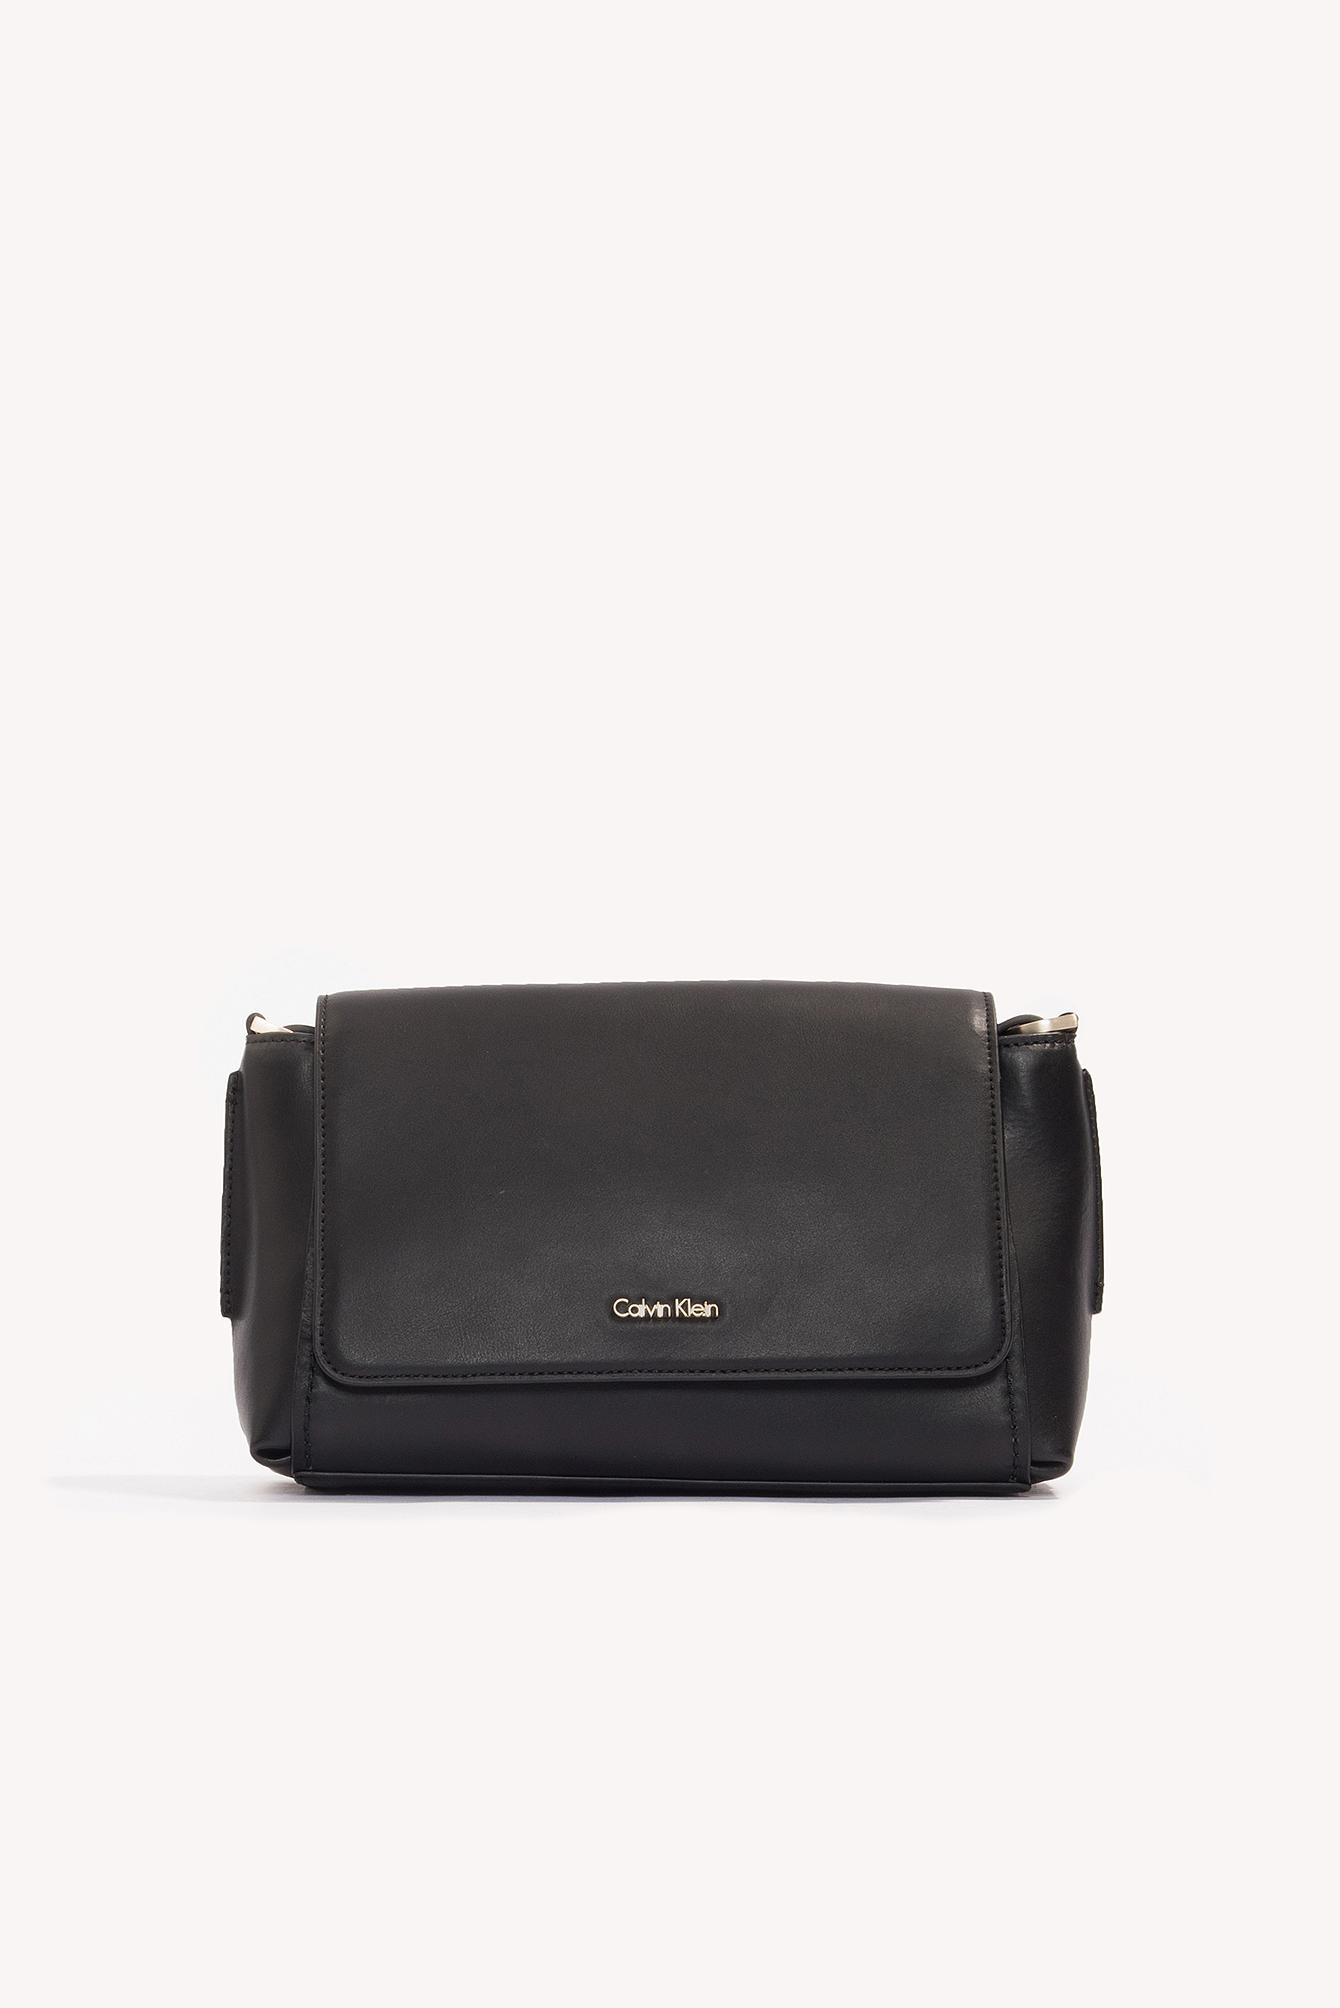 b5ec00c20a Gallery. Previously sold at: NA-KD · Women's Calvin Klein Crossbody